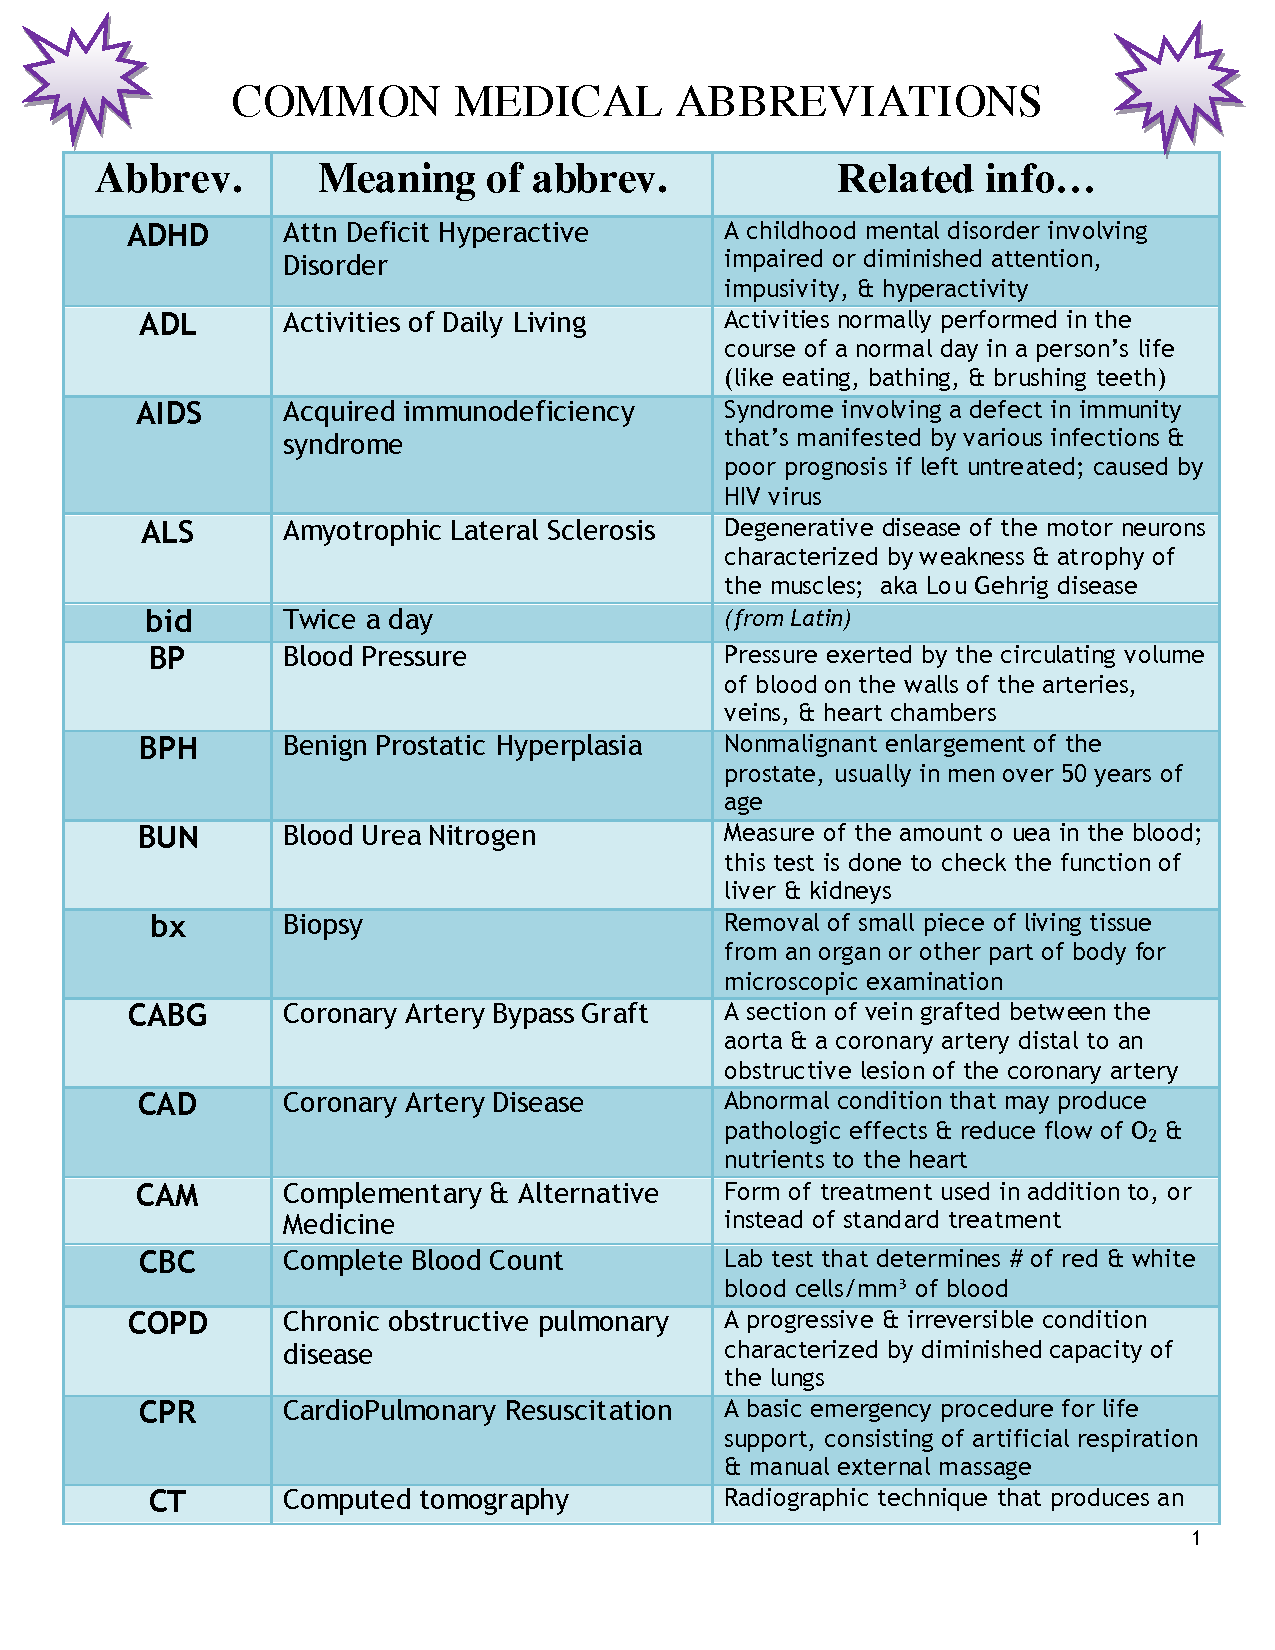 cfi meaning in medical terms